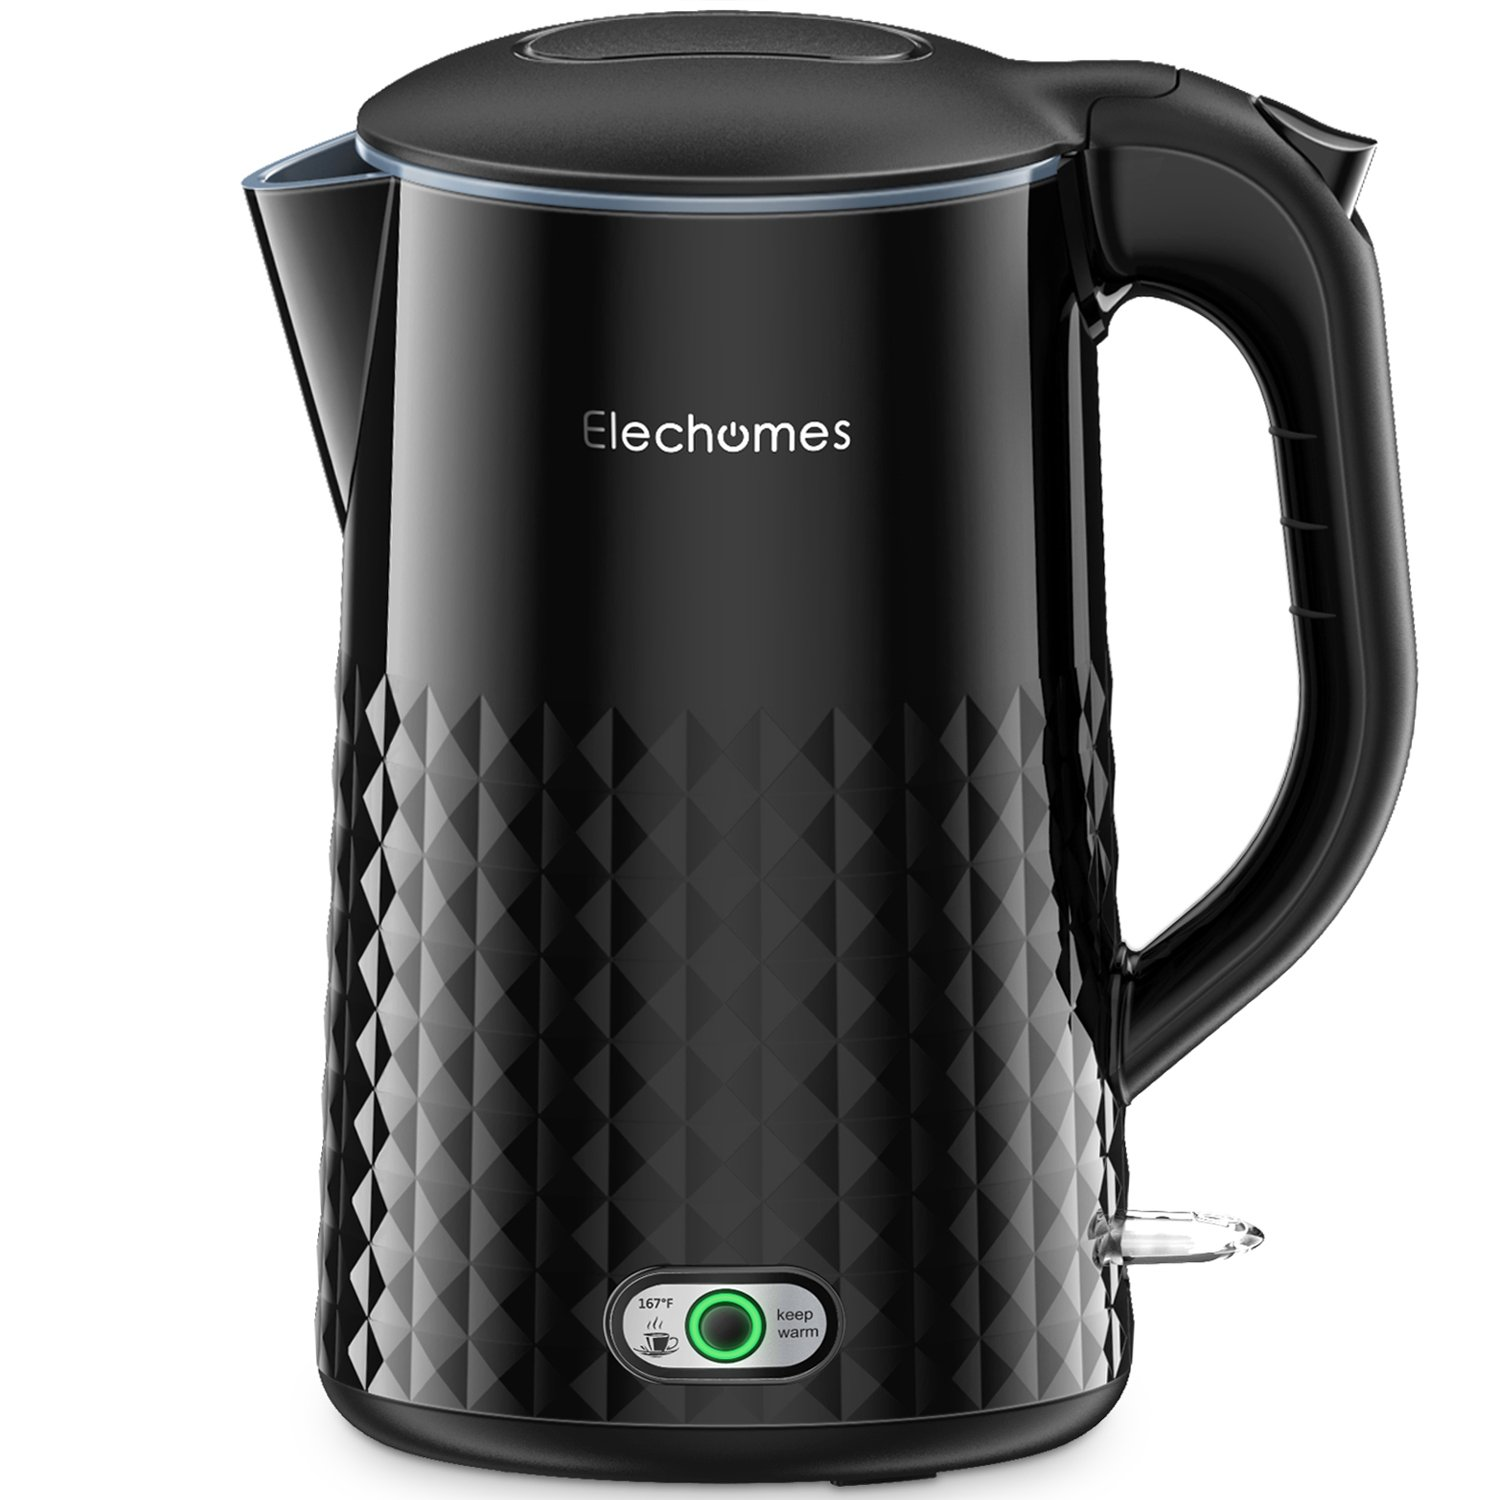 Elechomes Electric Kettle with Non-stick Coating, Smart Keep Warm,Stainless Steel Interior,Cool Touch Exterior and Vacuum Layer, 1.7L,Black